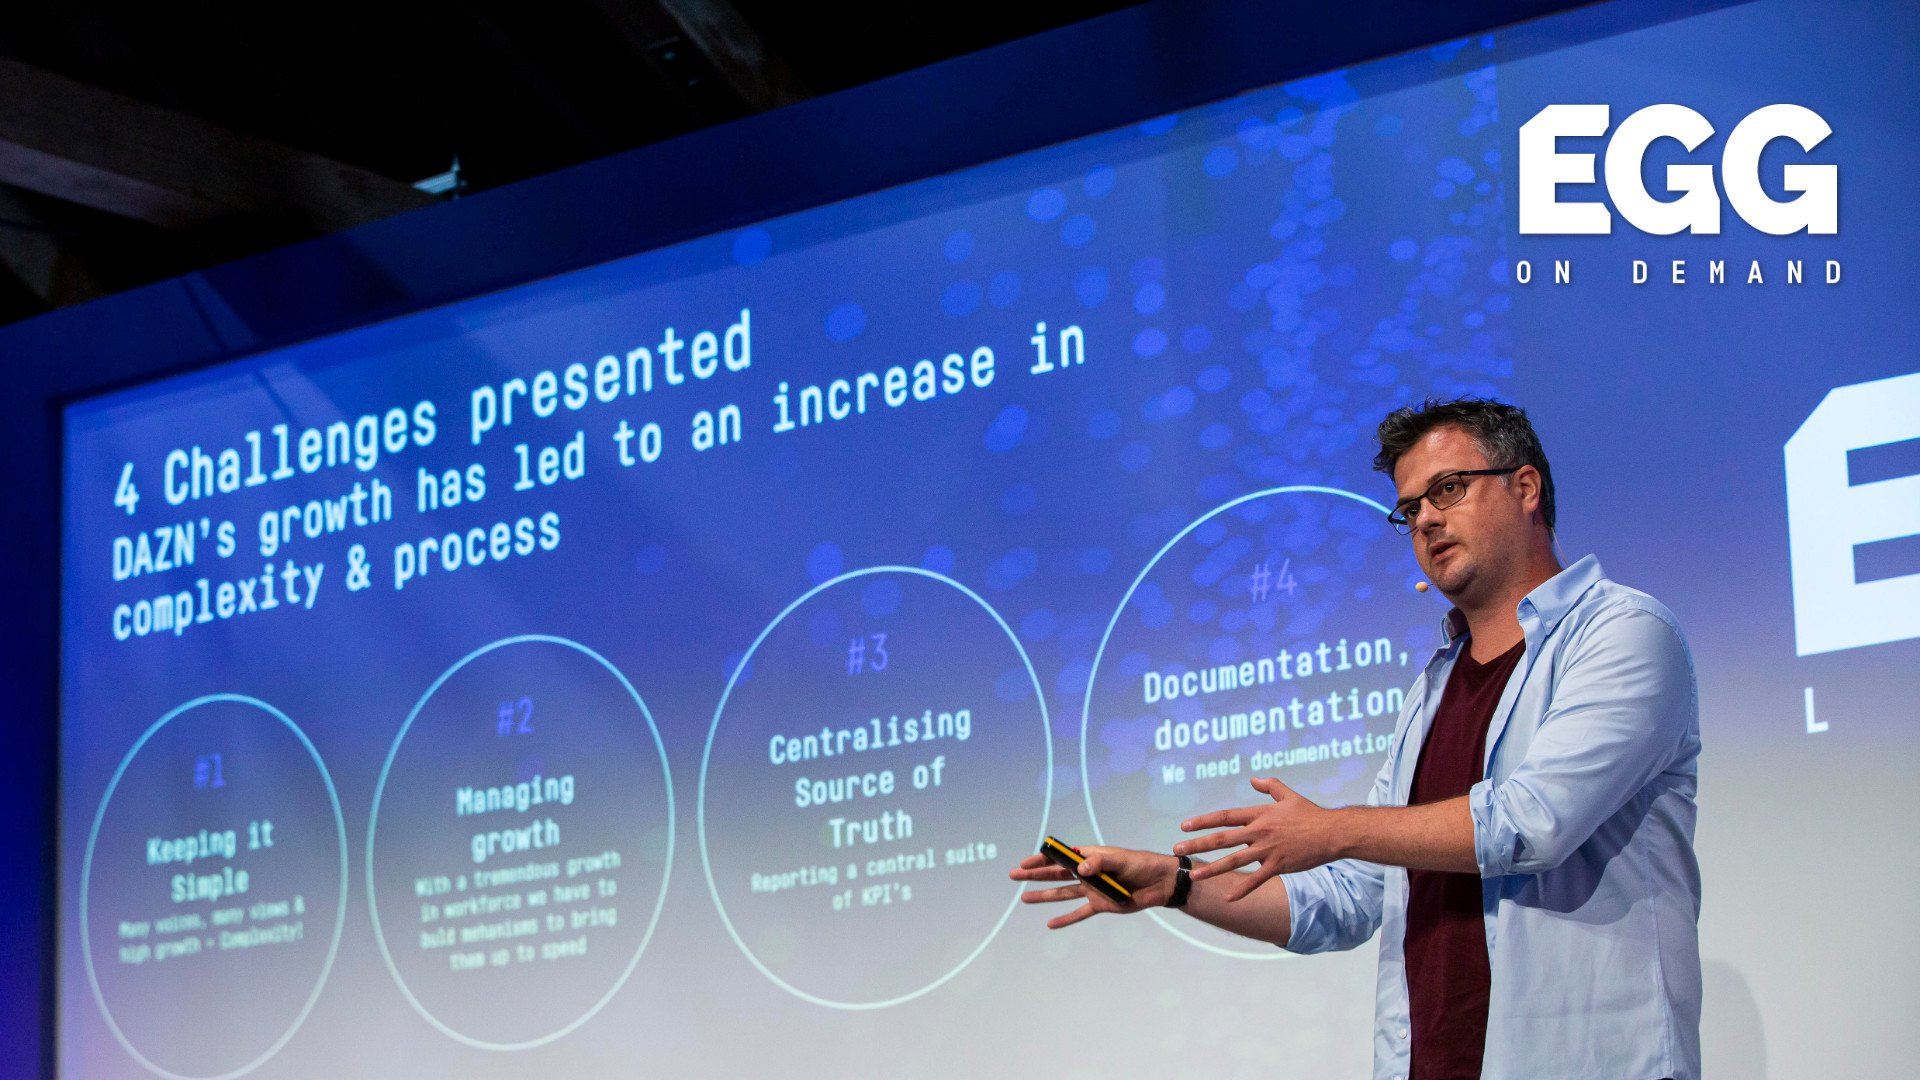 The Growing Pains, Pitfalls & Future for a Data Science Team DAZN EGG LDN 2019-High-Quality